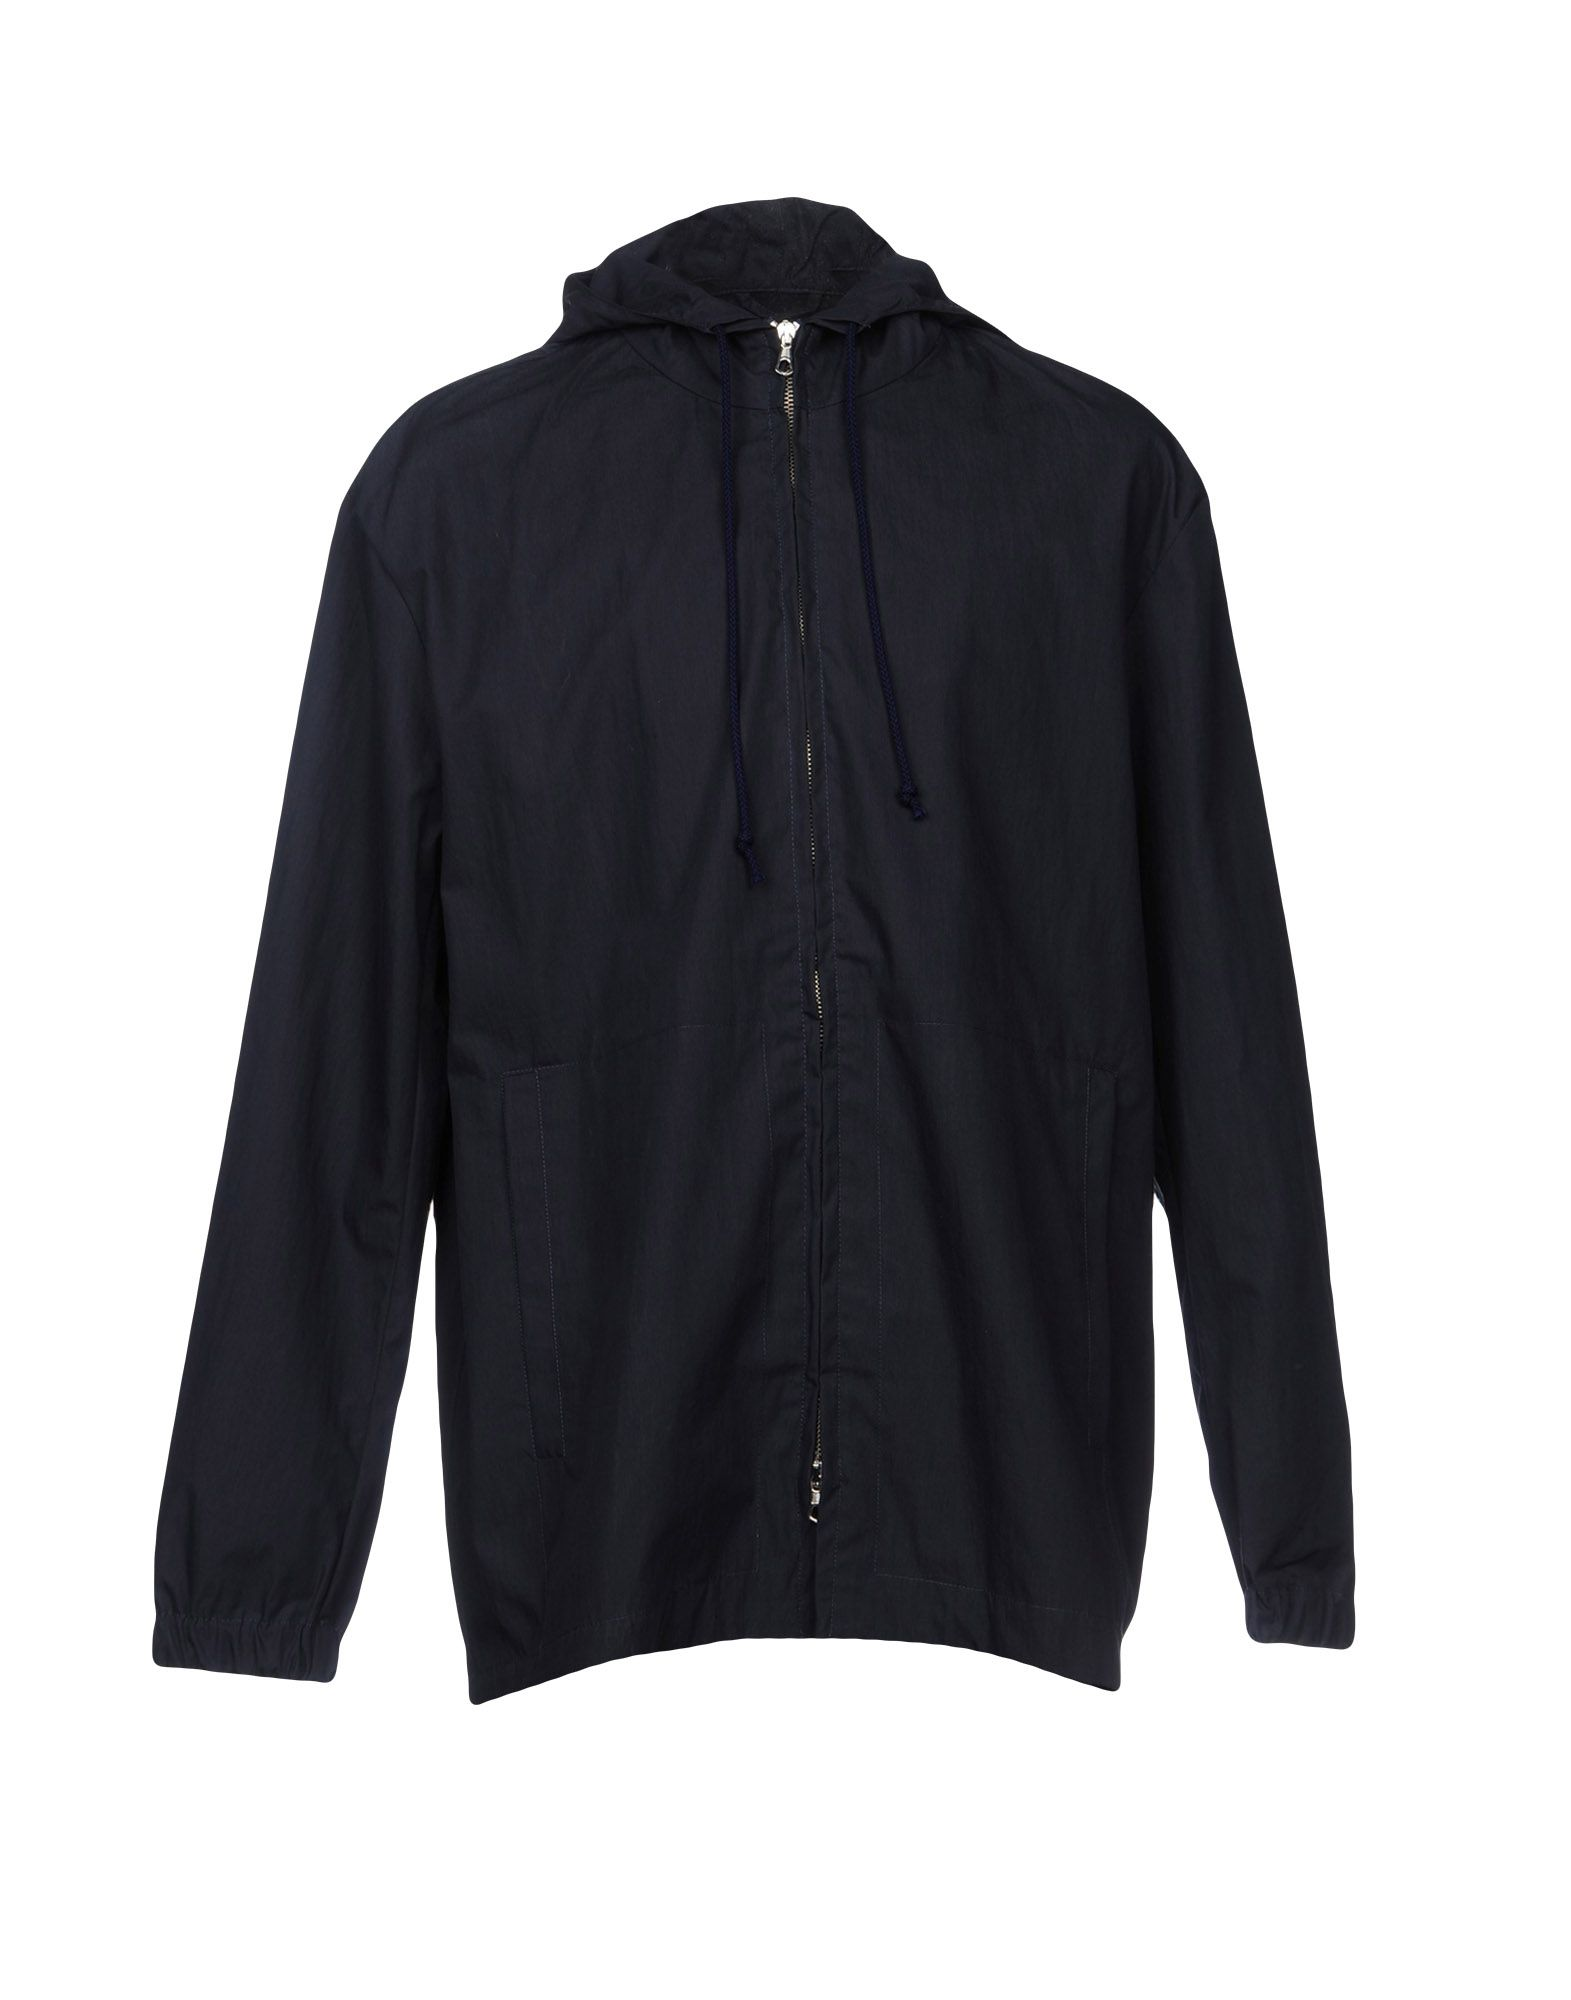 TRÈS BIEN Jacket in Dark Blue